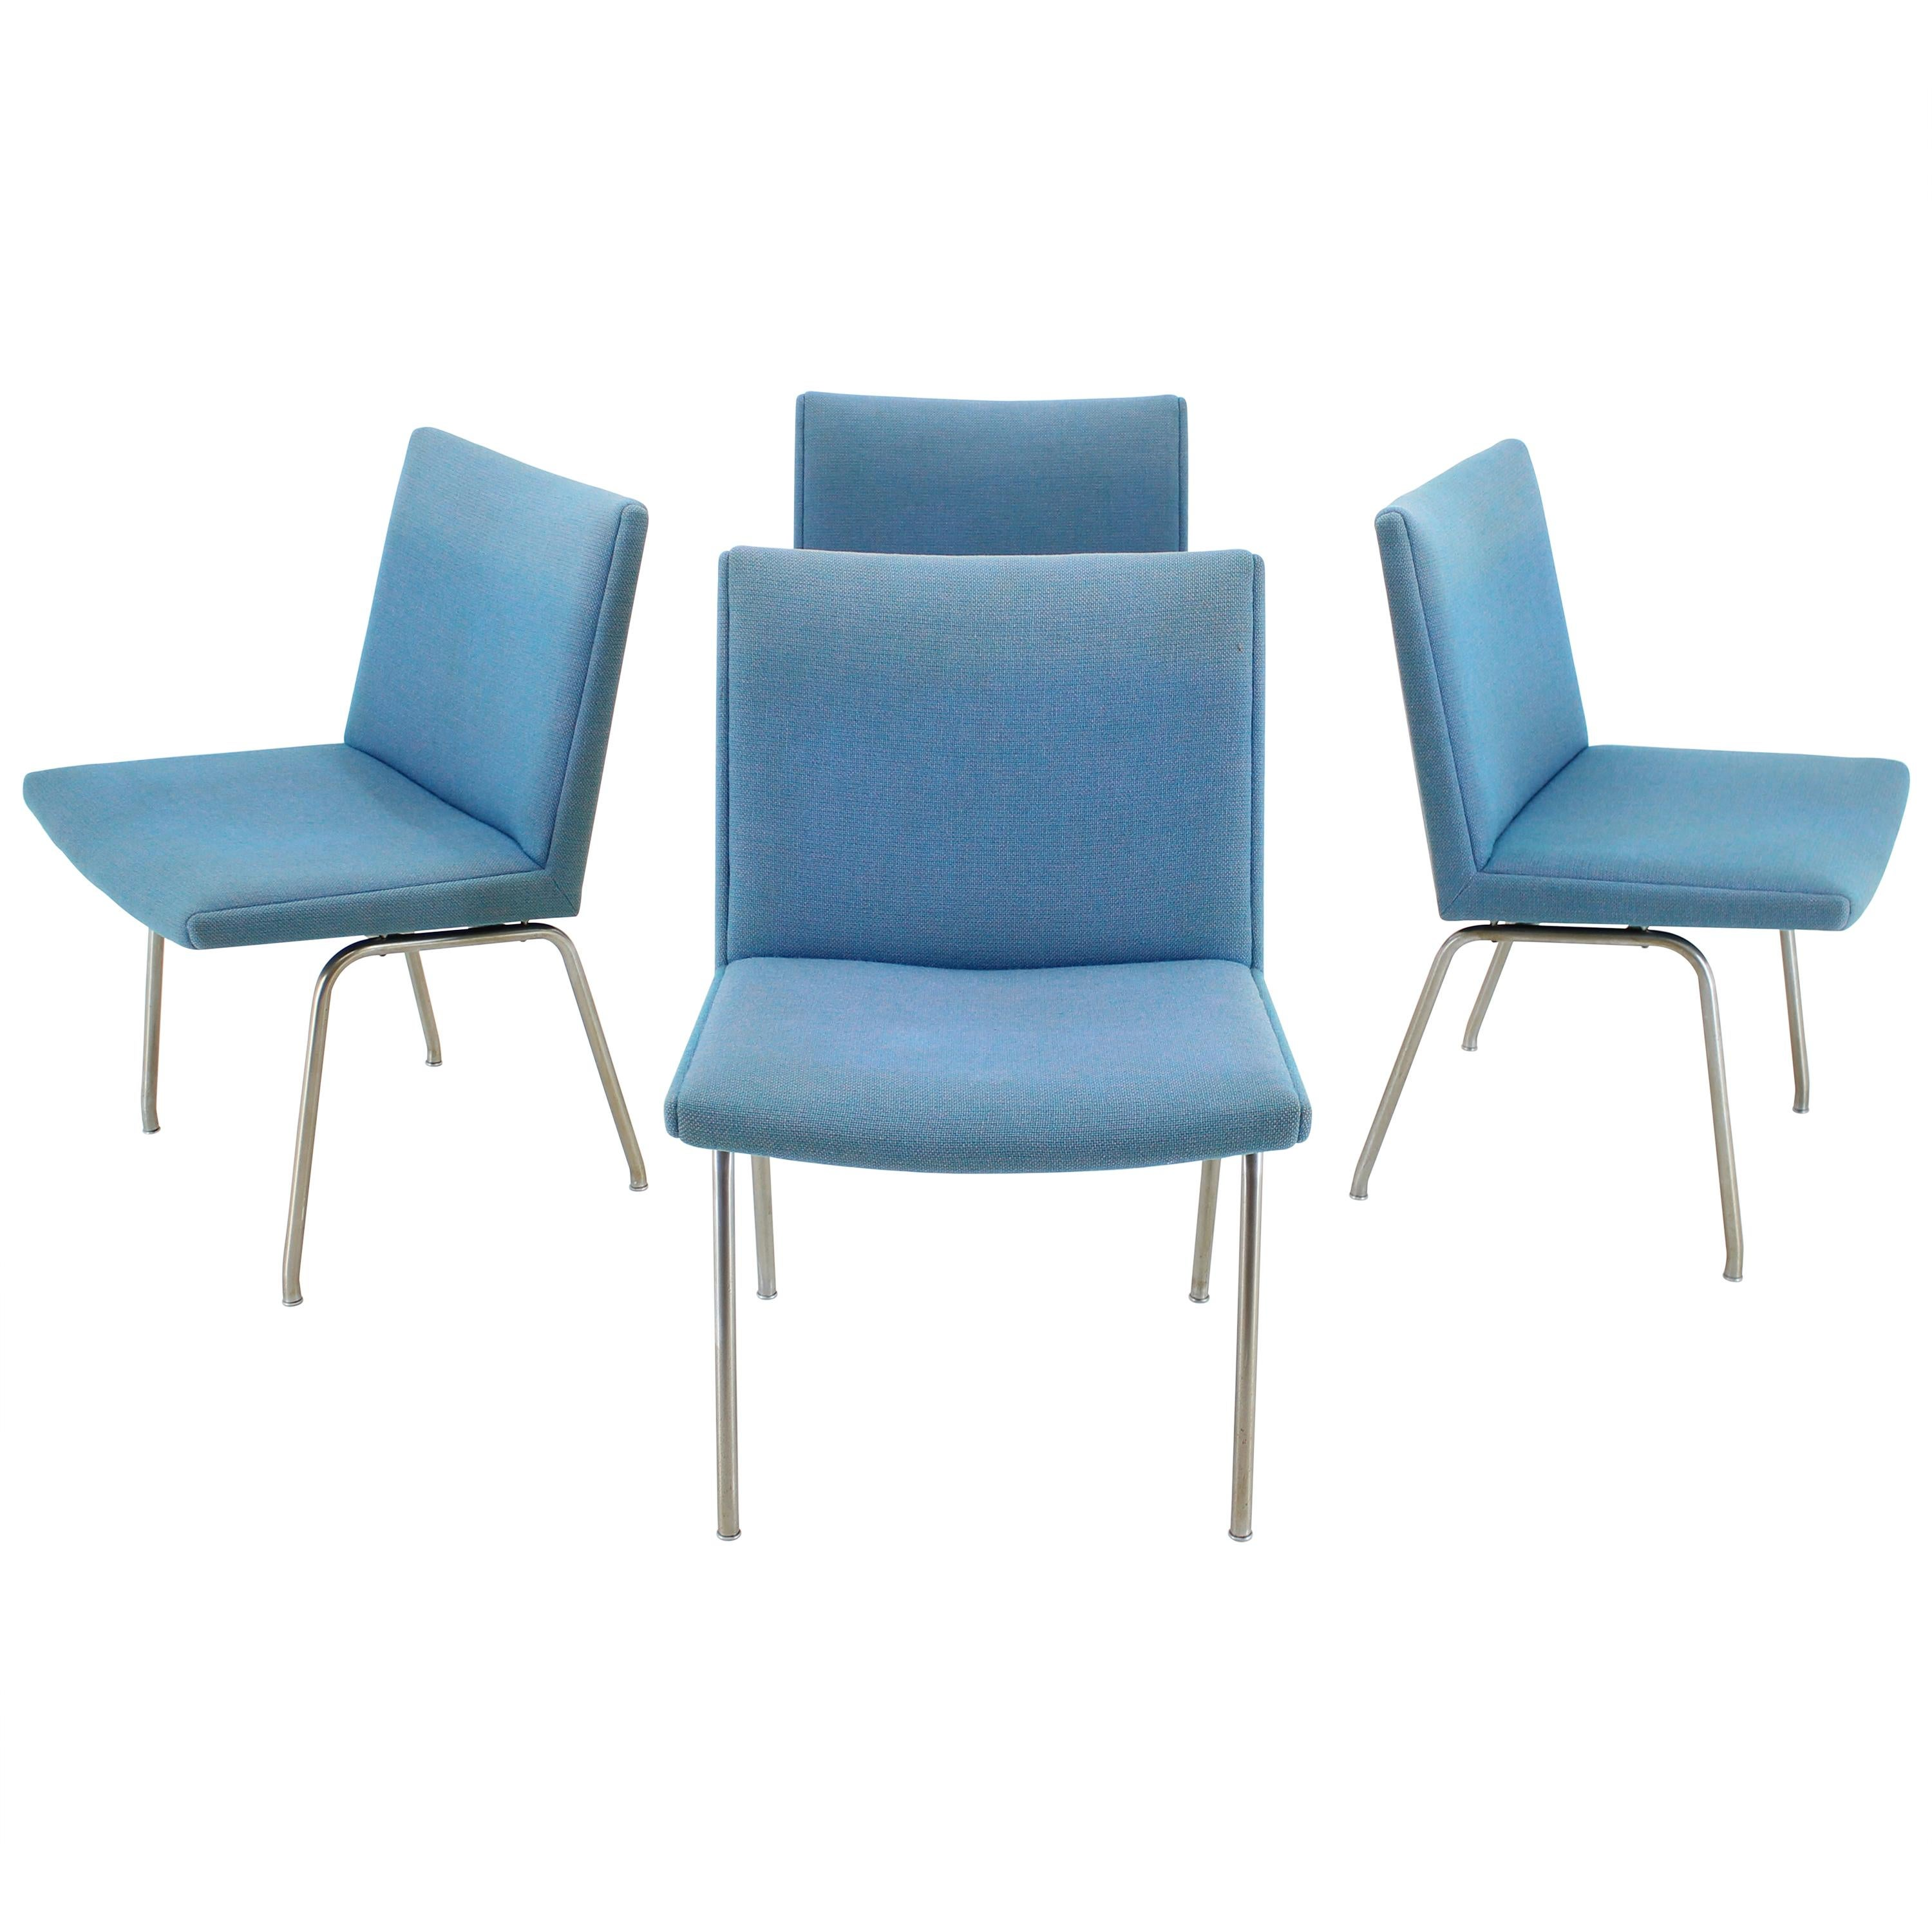 1960s Hans J. Wegner Airport Lounge Chairs for A.P. Stolen, Set of 4